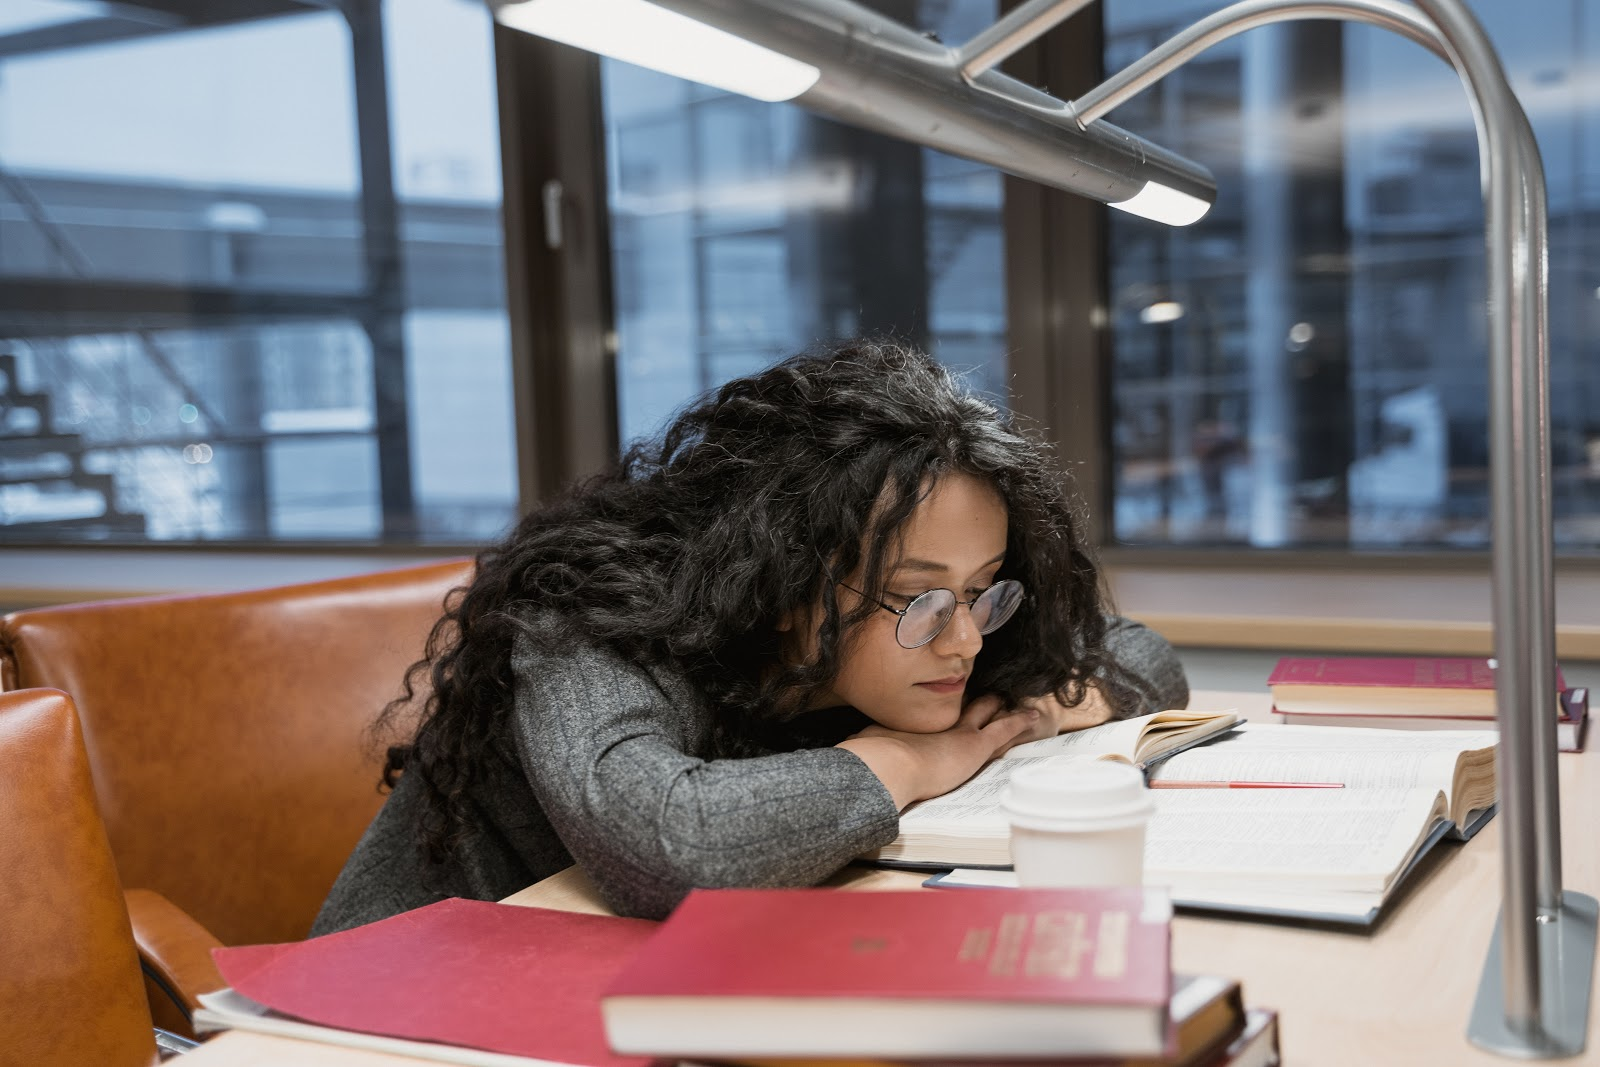 A teen girl wearing glasses is reading over multiple textbooks with a cup of coffee on the table.